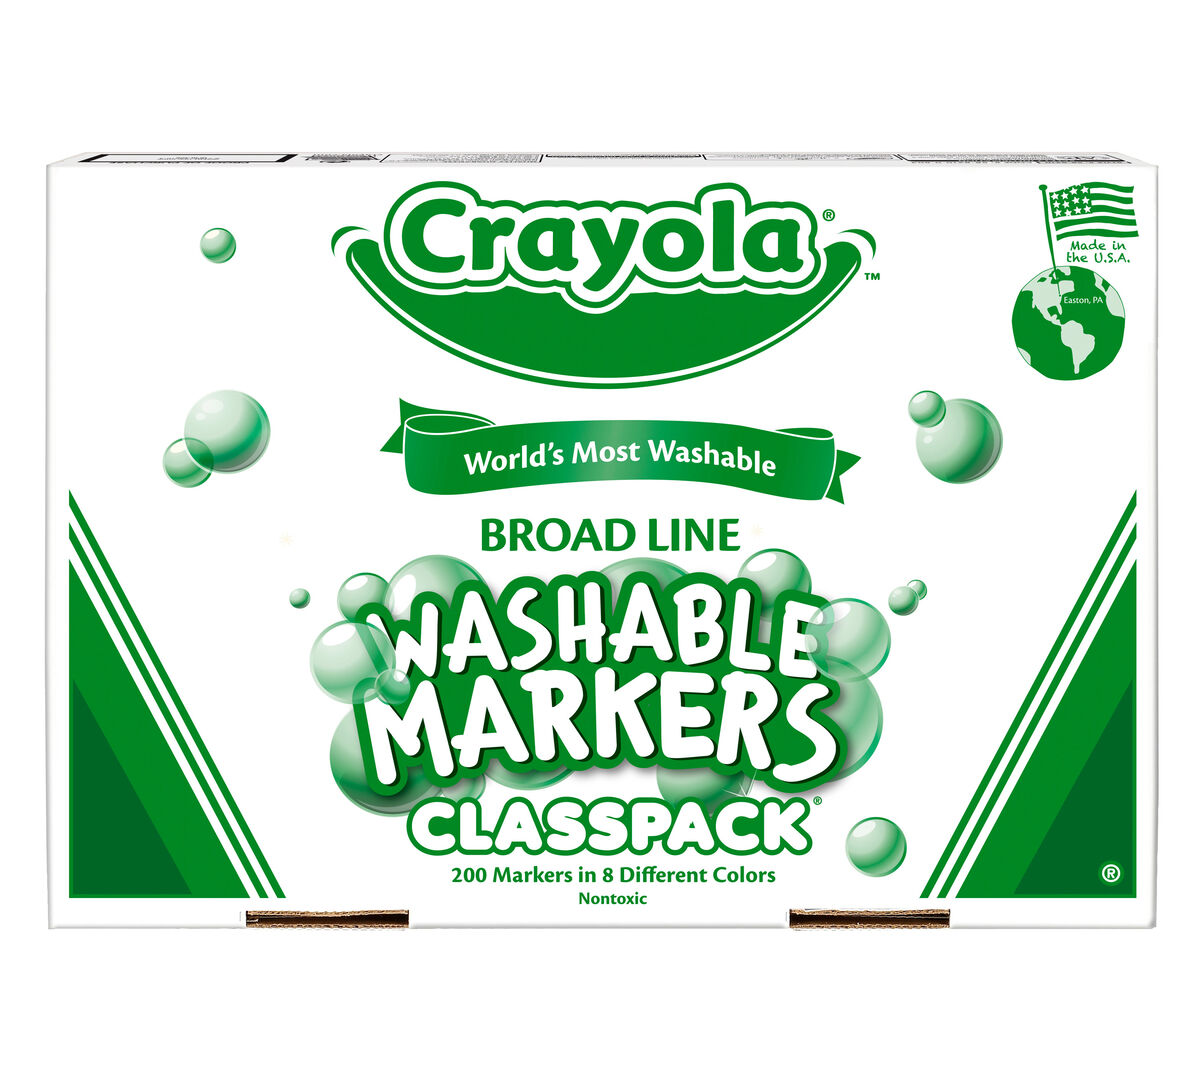 Crayola Classic Broad Line Markers are the classic, long-lasting, durable markers you know from your childhood. They lay down lots of brilliant color, yet don't bleed through most paper.  This bulk Broad Line Marker Classpack includes enough supplies for the entire class!  A total of 200 markers are included. There are 25 markers in each of the following 8 colors: Yellow, Brown, Orange, Red, Violet, Blue, Green and Black.